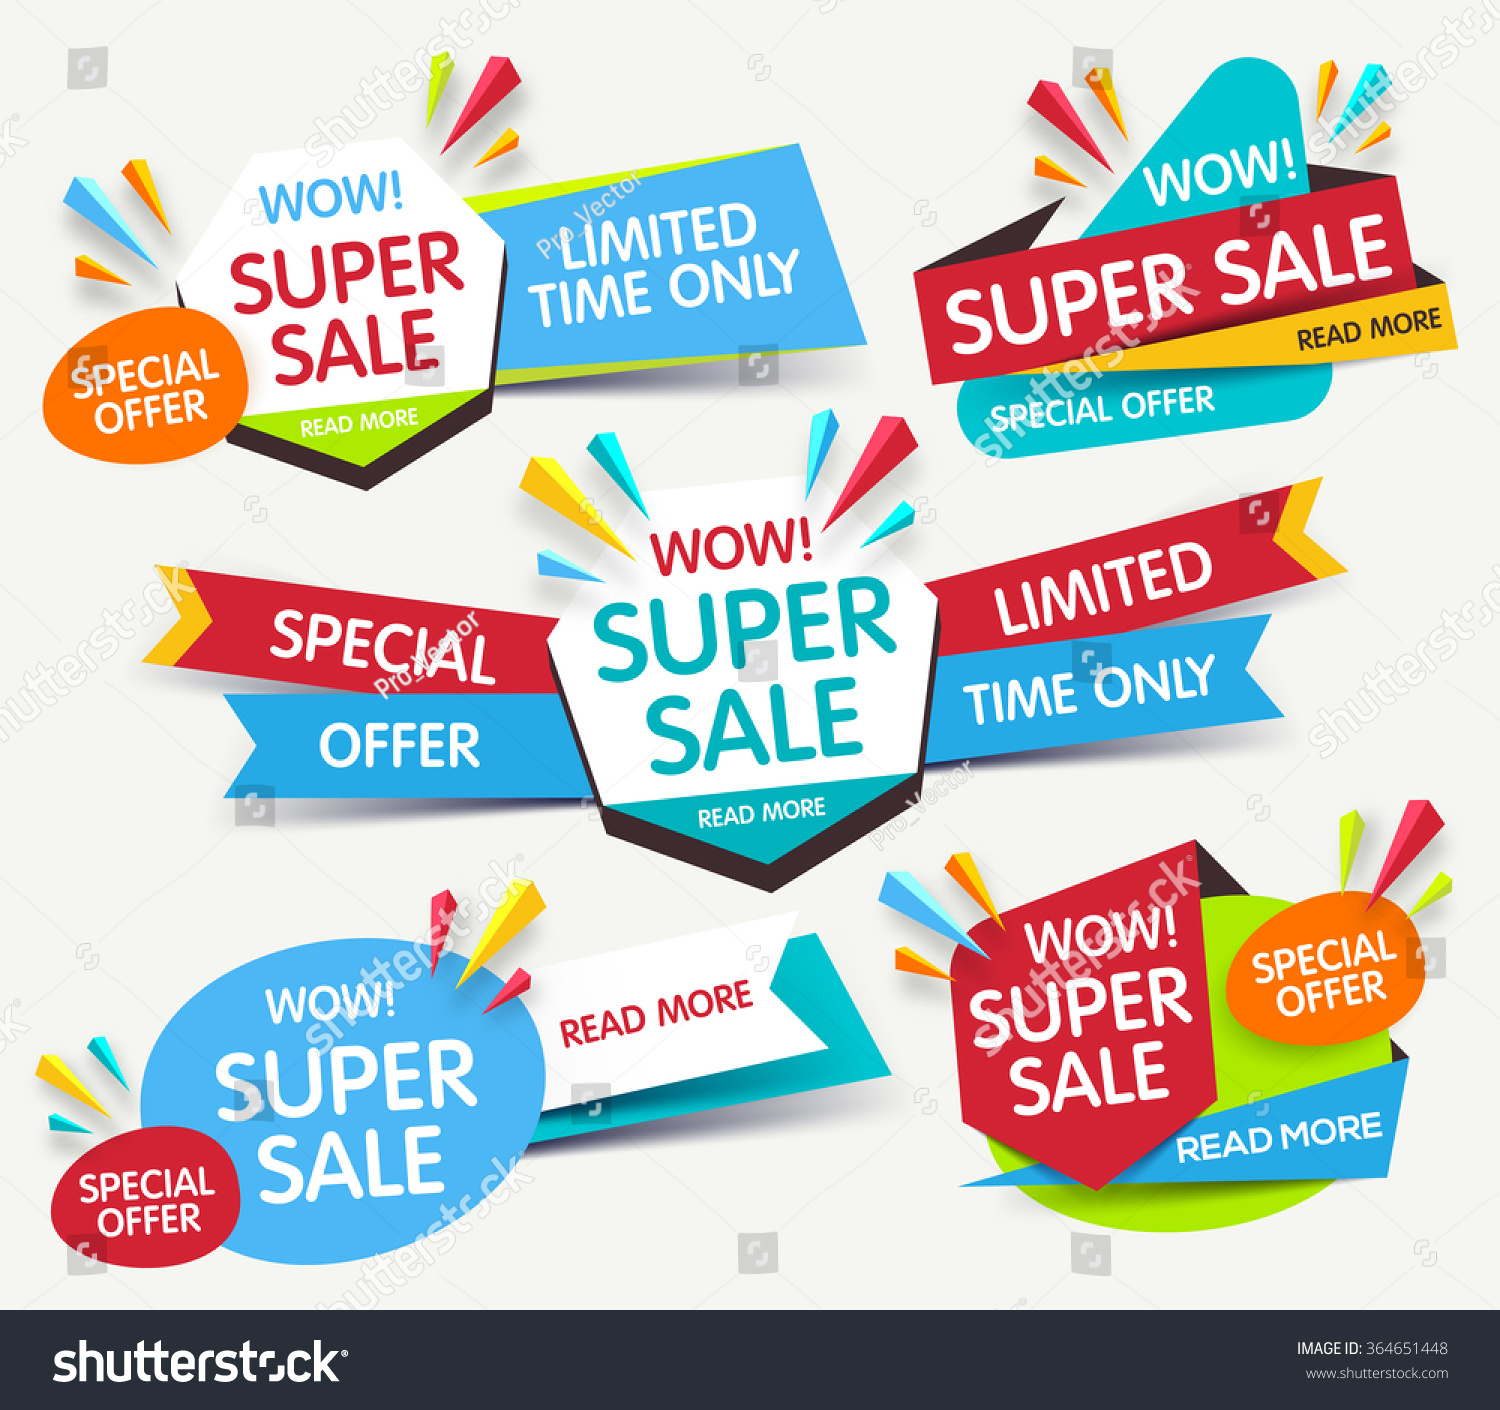 Shutterstock editor for Photographs for sale online